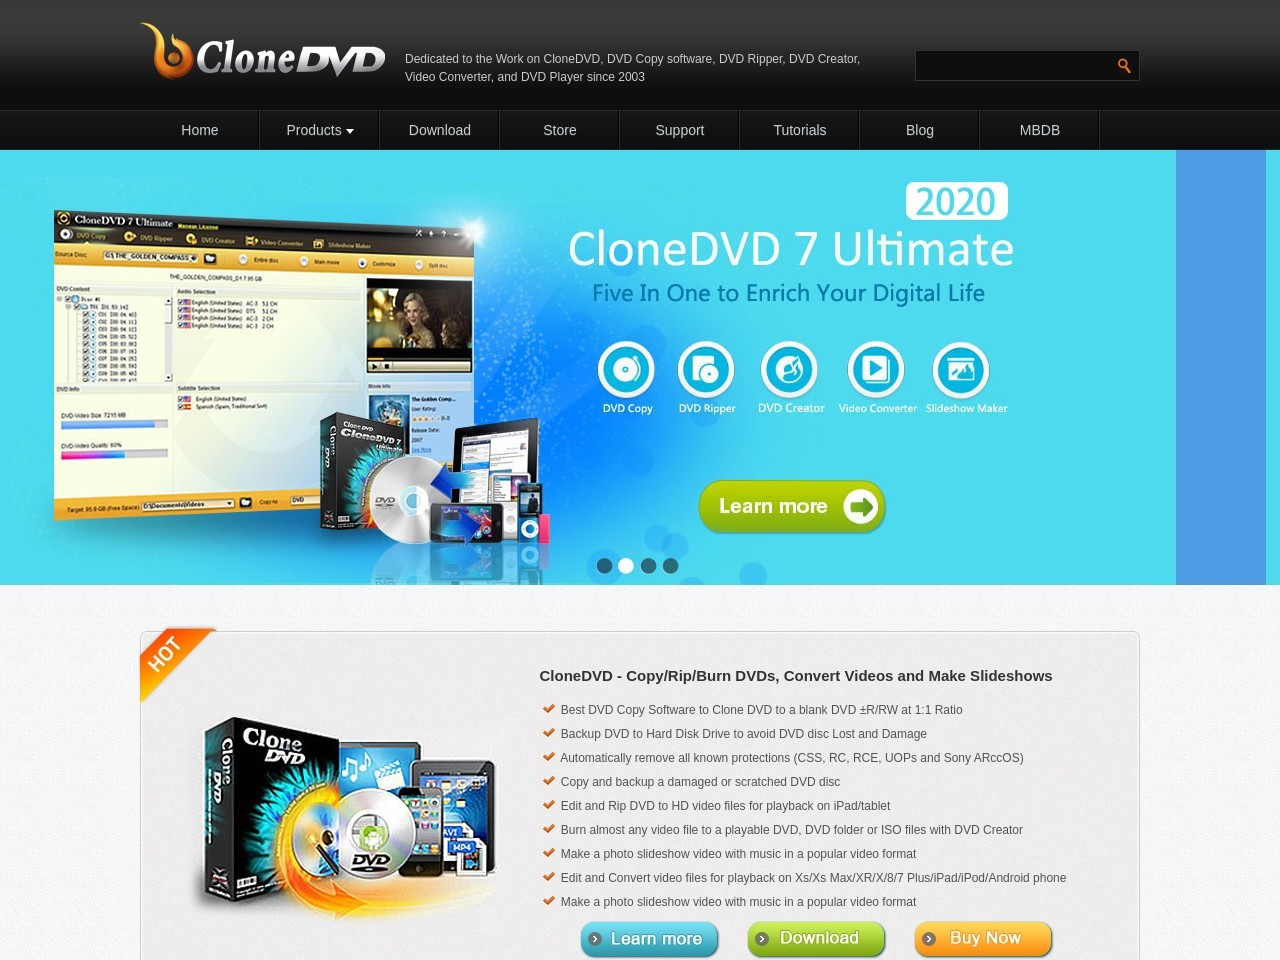 CloneDVD 7 Ultimate 3 years/1 PC Voucher Deal - Instant Deal